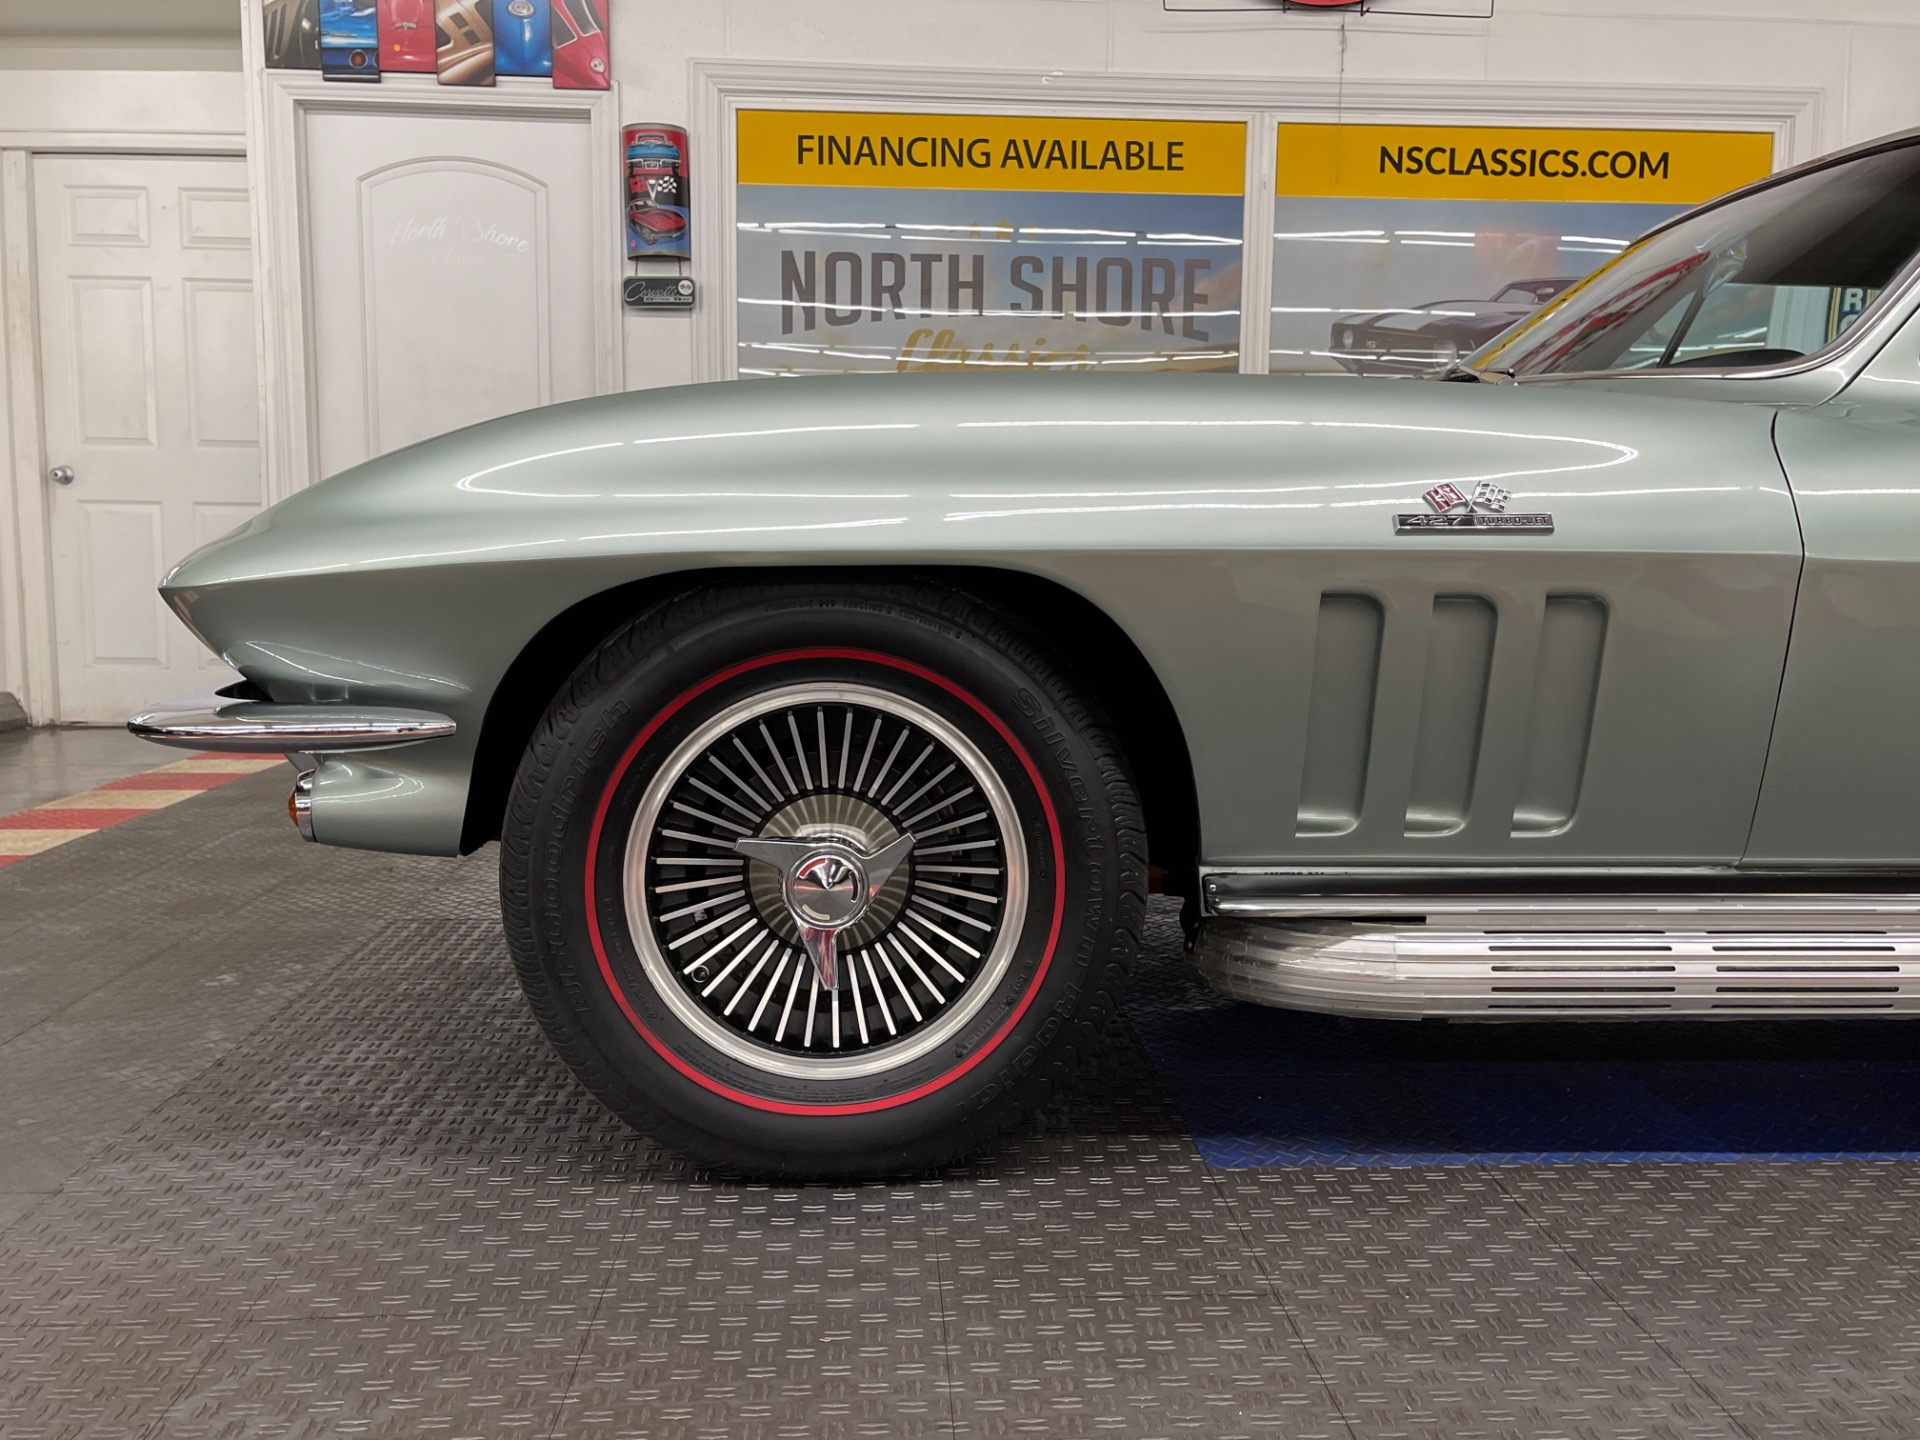 Used 1966 Chevrolet Corvette - MOSPORT GREEN COUPE - 390 HP 427 ENGINE - 4 SPEED - SEE VIDEO | Mundelein, IL